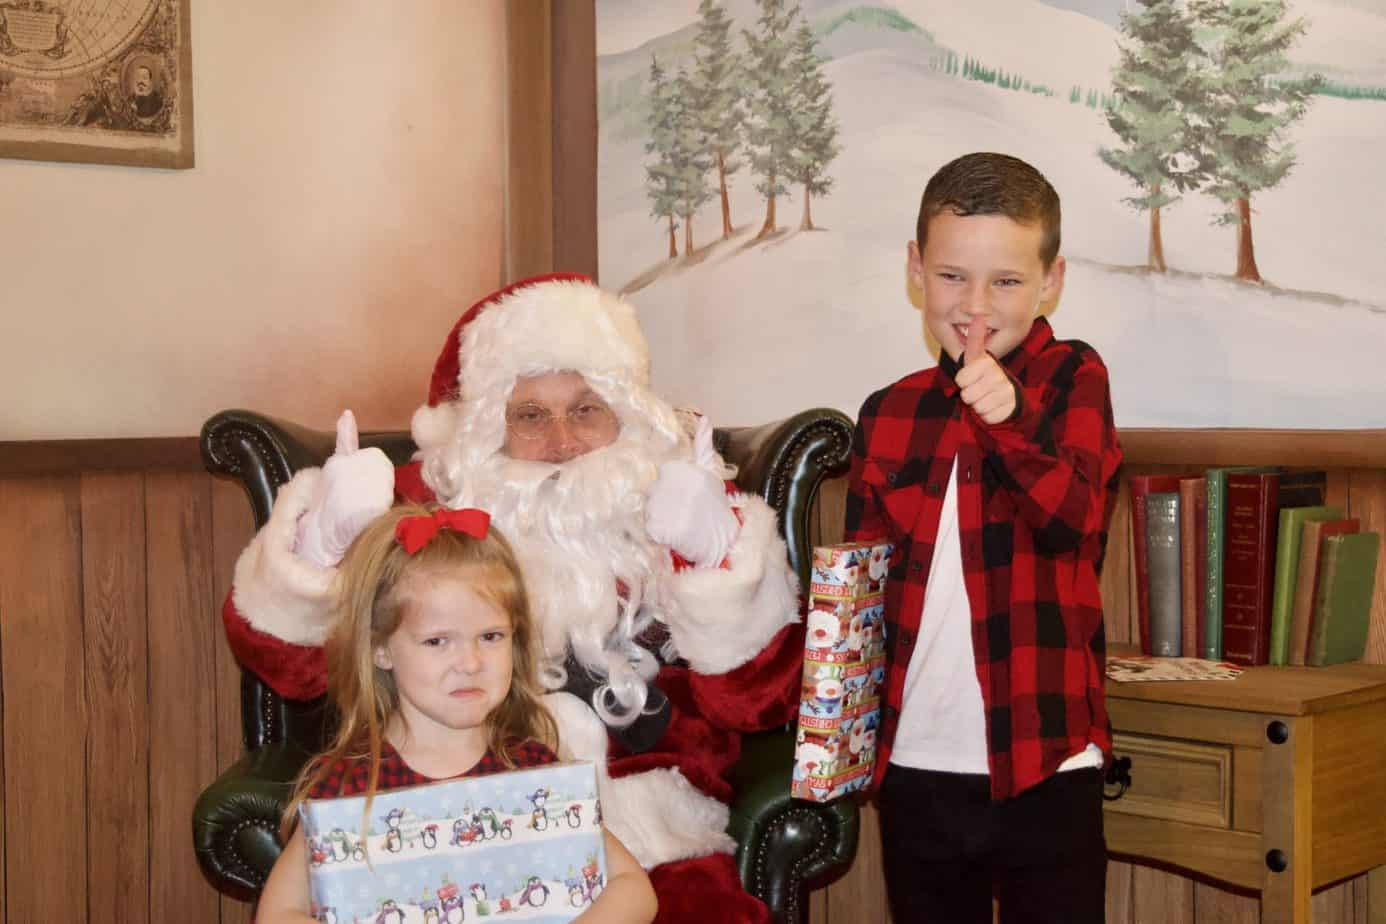 All smiles with their gifts from Santa Clause at Resorts world birmingham